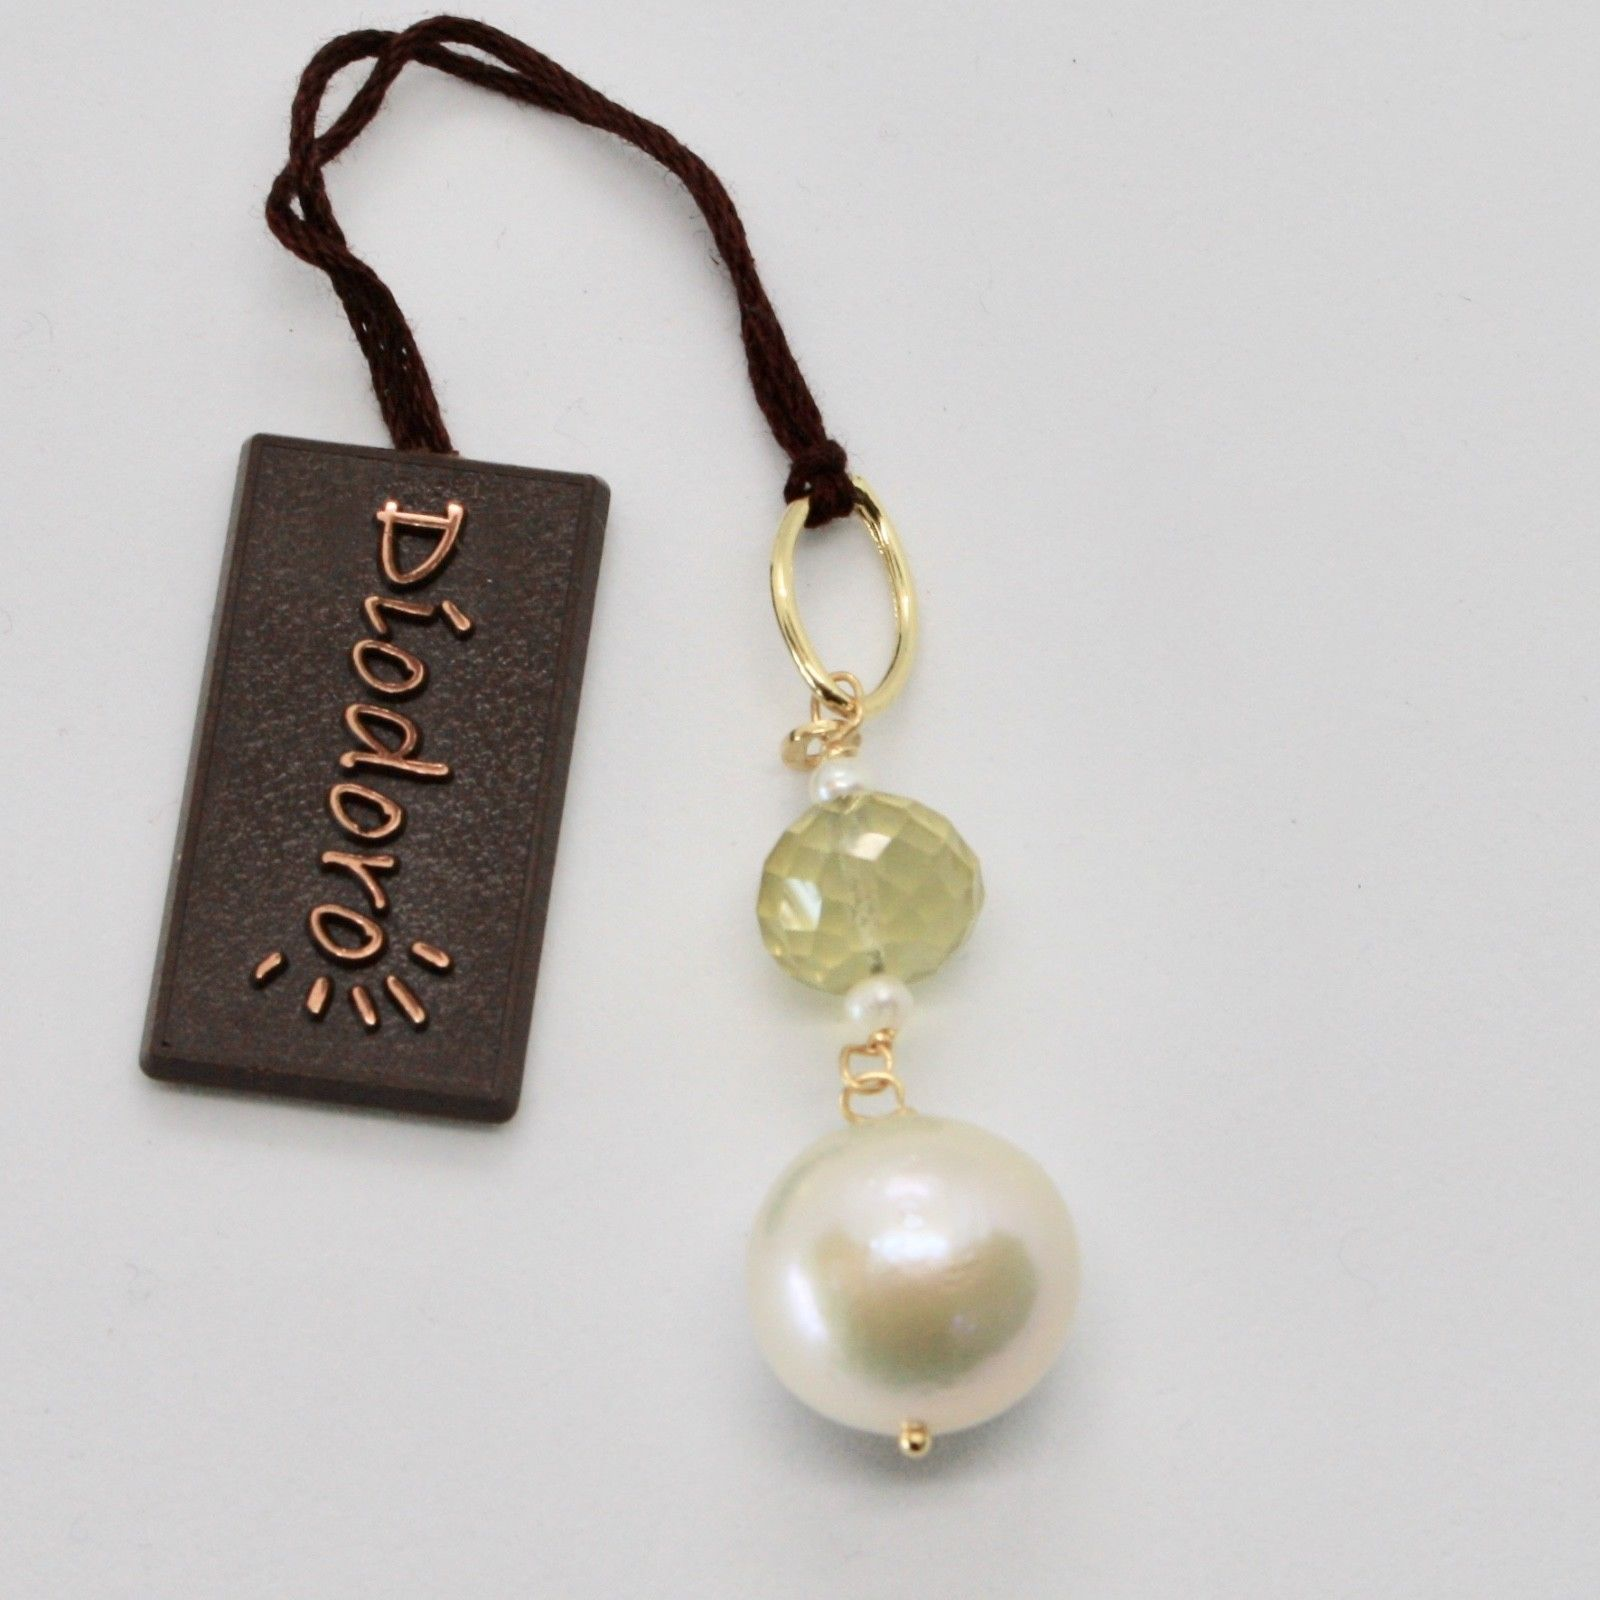 SOLID 18K YELLOW GOLD PENDANT WITH WHITE FW PEARL AND LEMON QUARTZ MADE IN ITALY